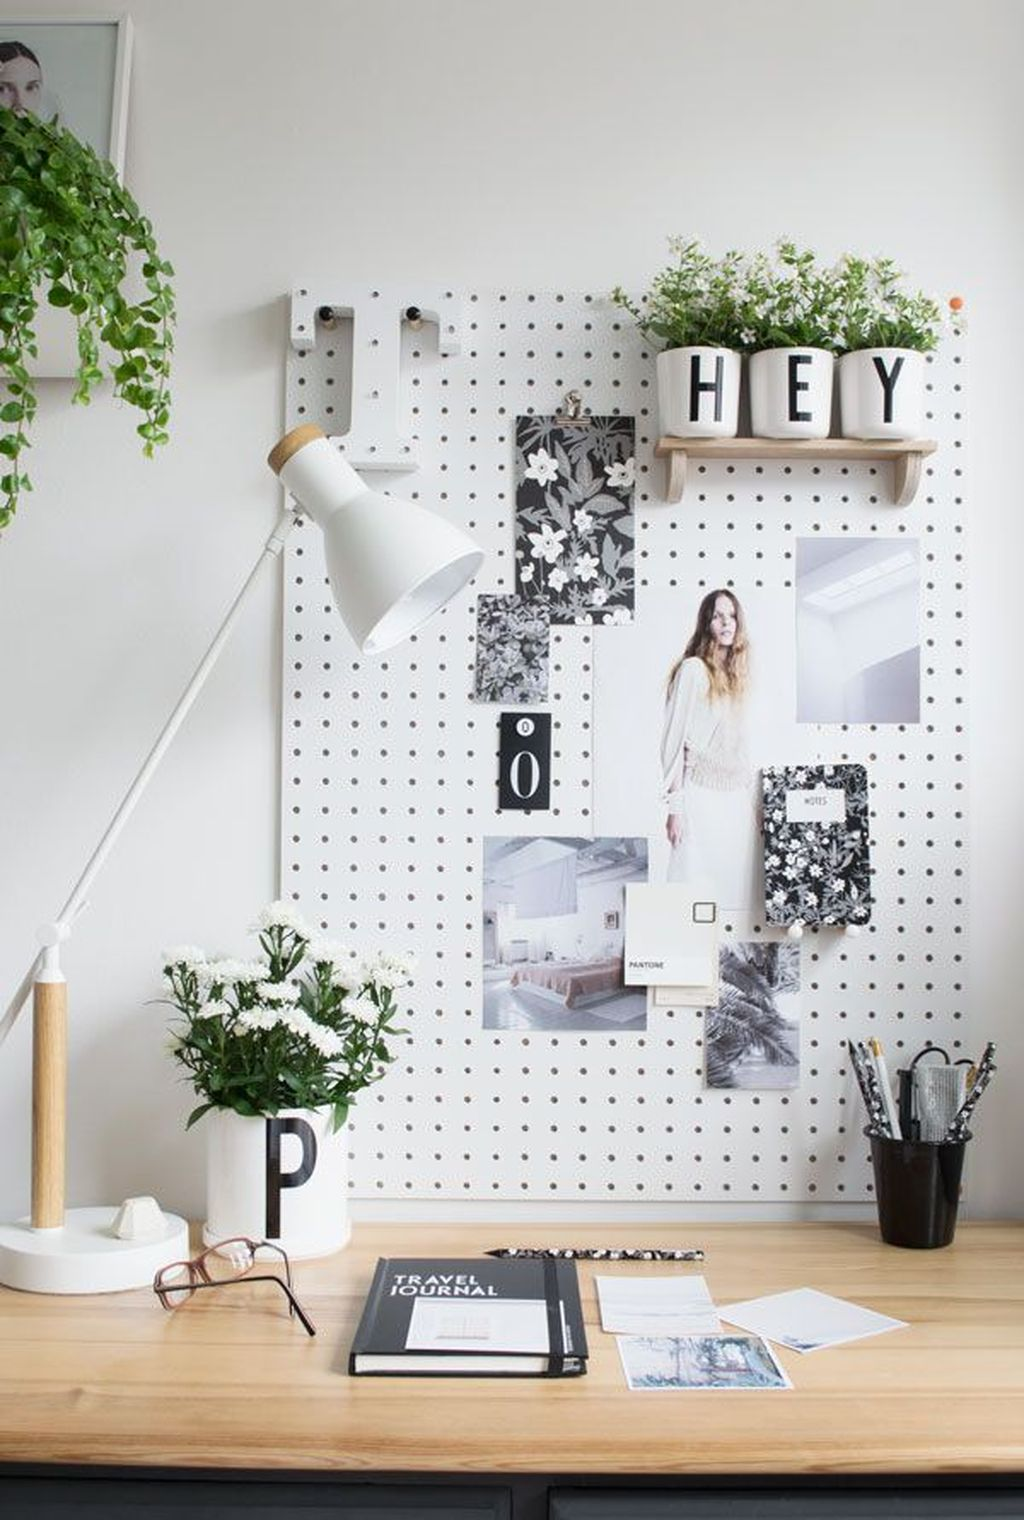 Modern And Cozy Office Interior Design Ideas To Makes You Feel Comfortable 66